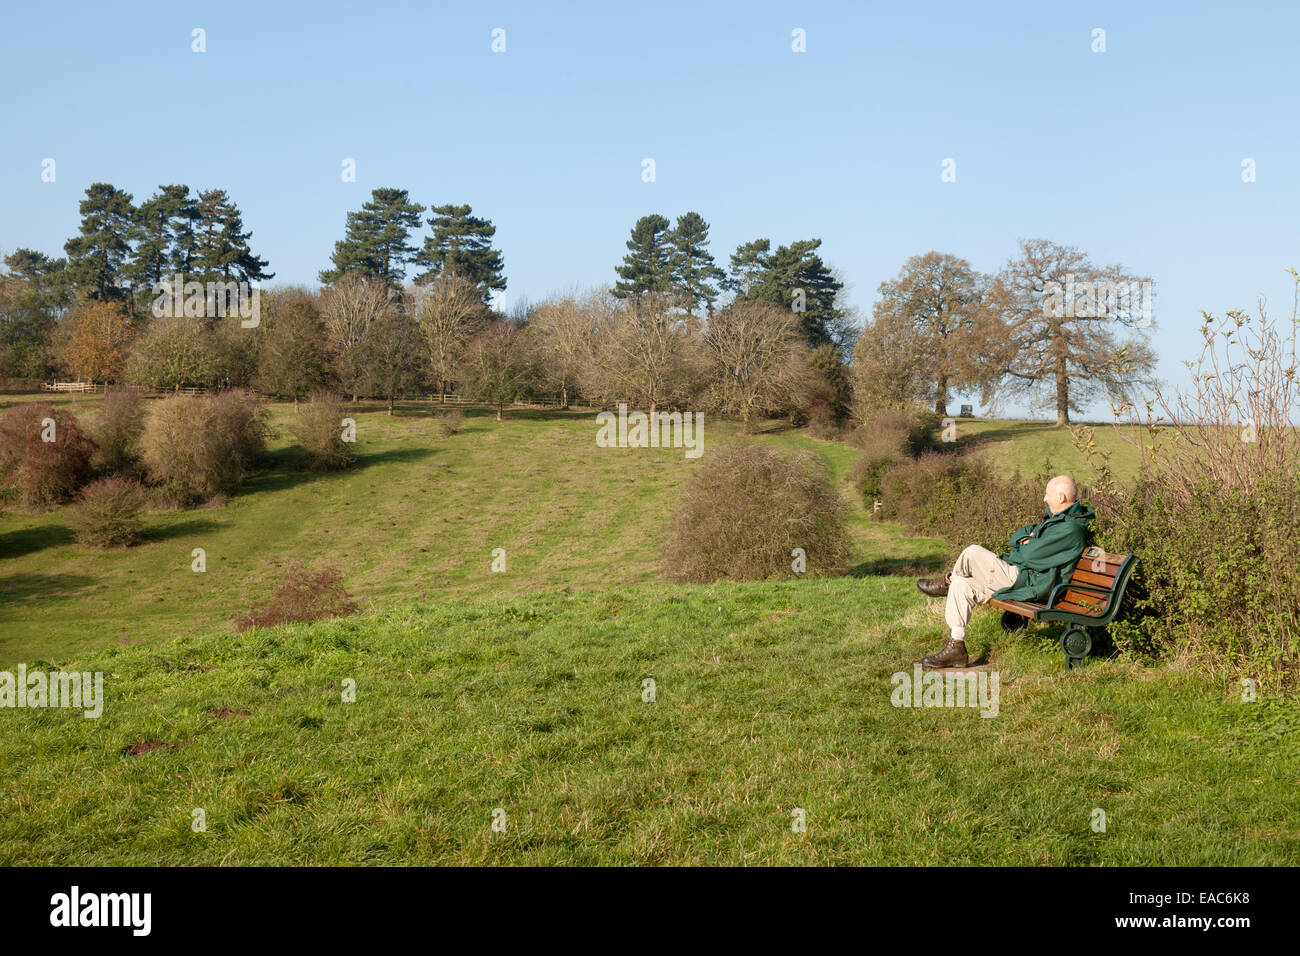 A man sitting on a bench looking out over English countryside, Welcombe Hills, Warwickshire UK - Stock Image